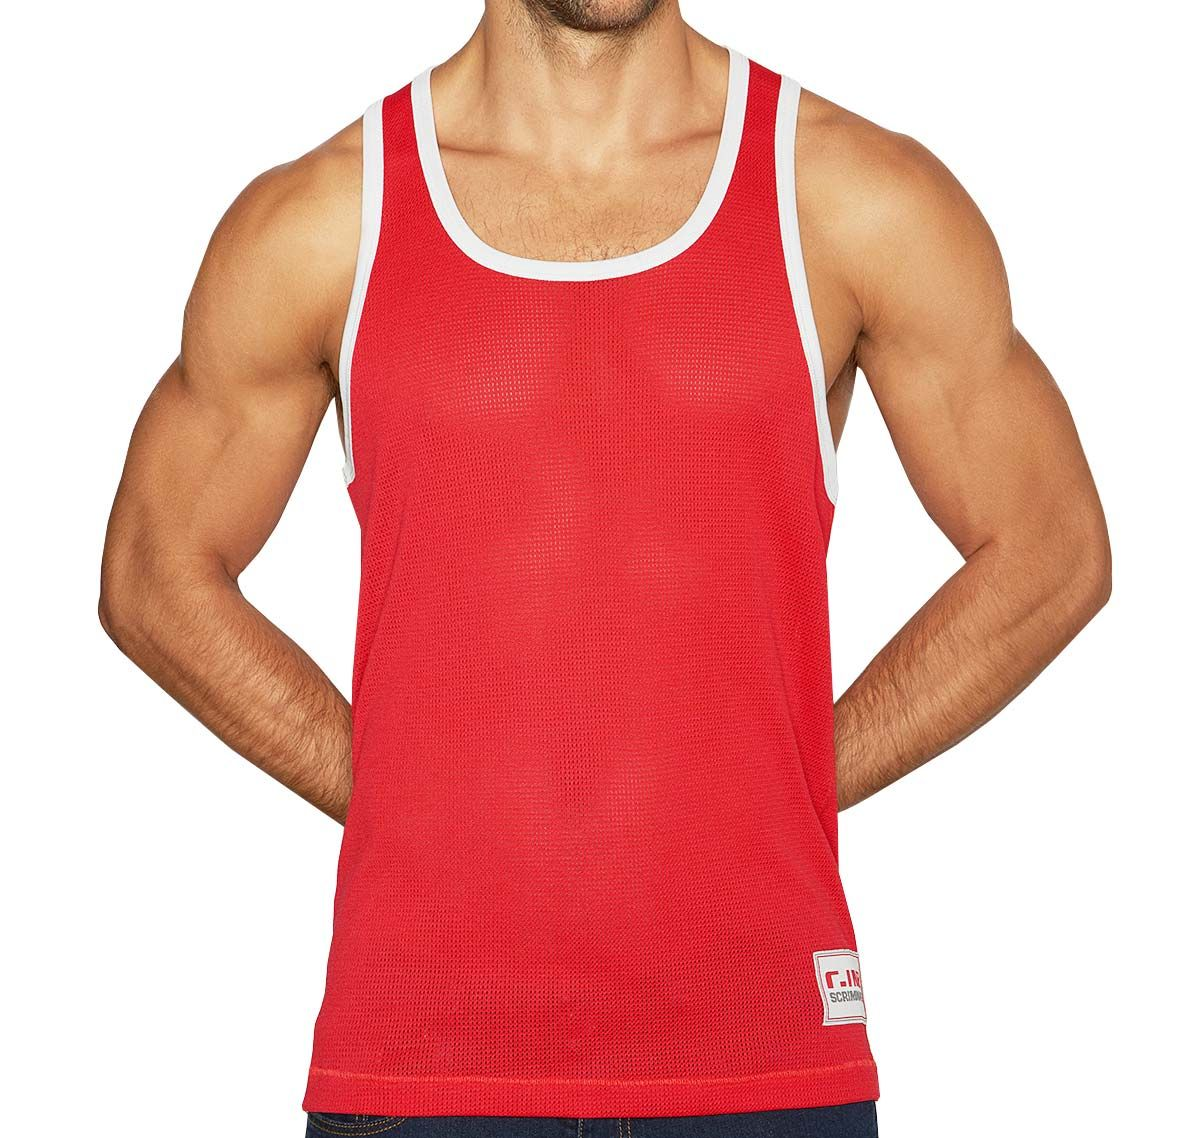 C-IN2 Canotta SCRIMMAGE RELAXED TANK 6806-615, rosso